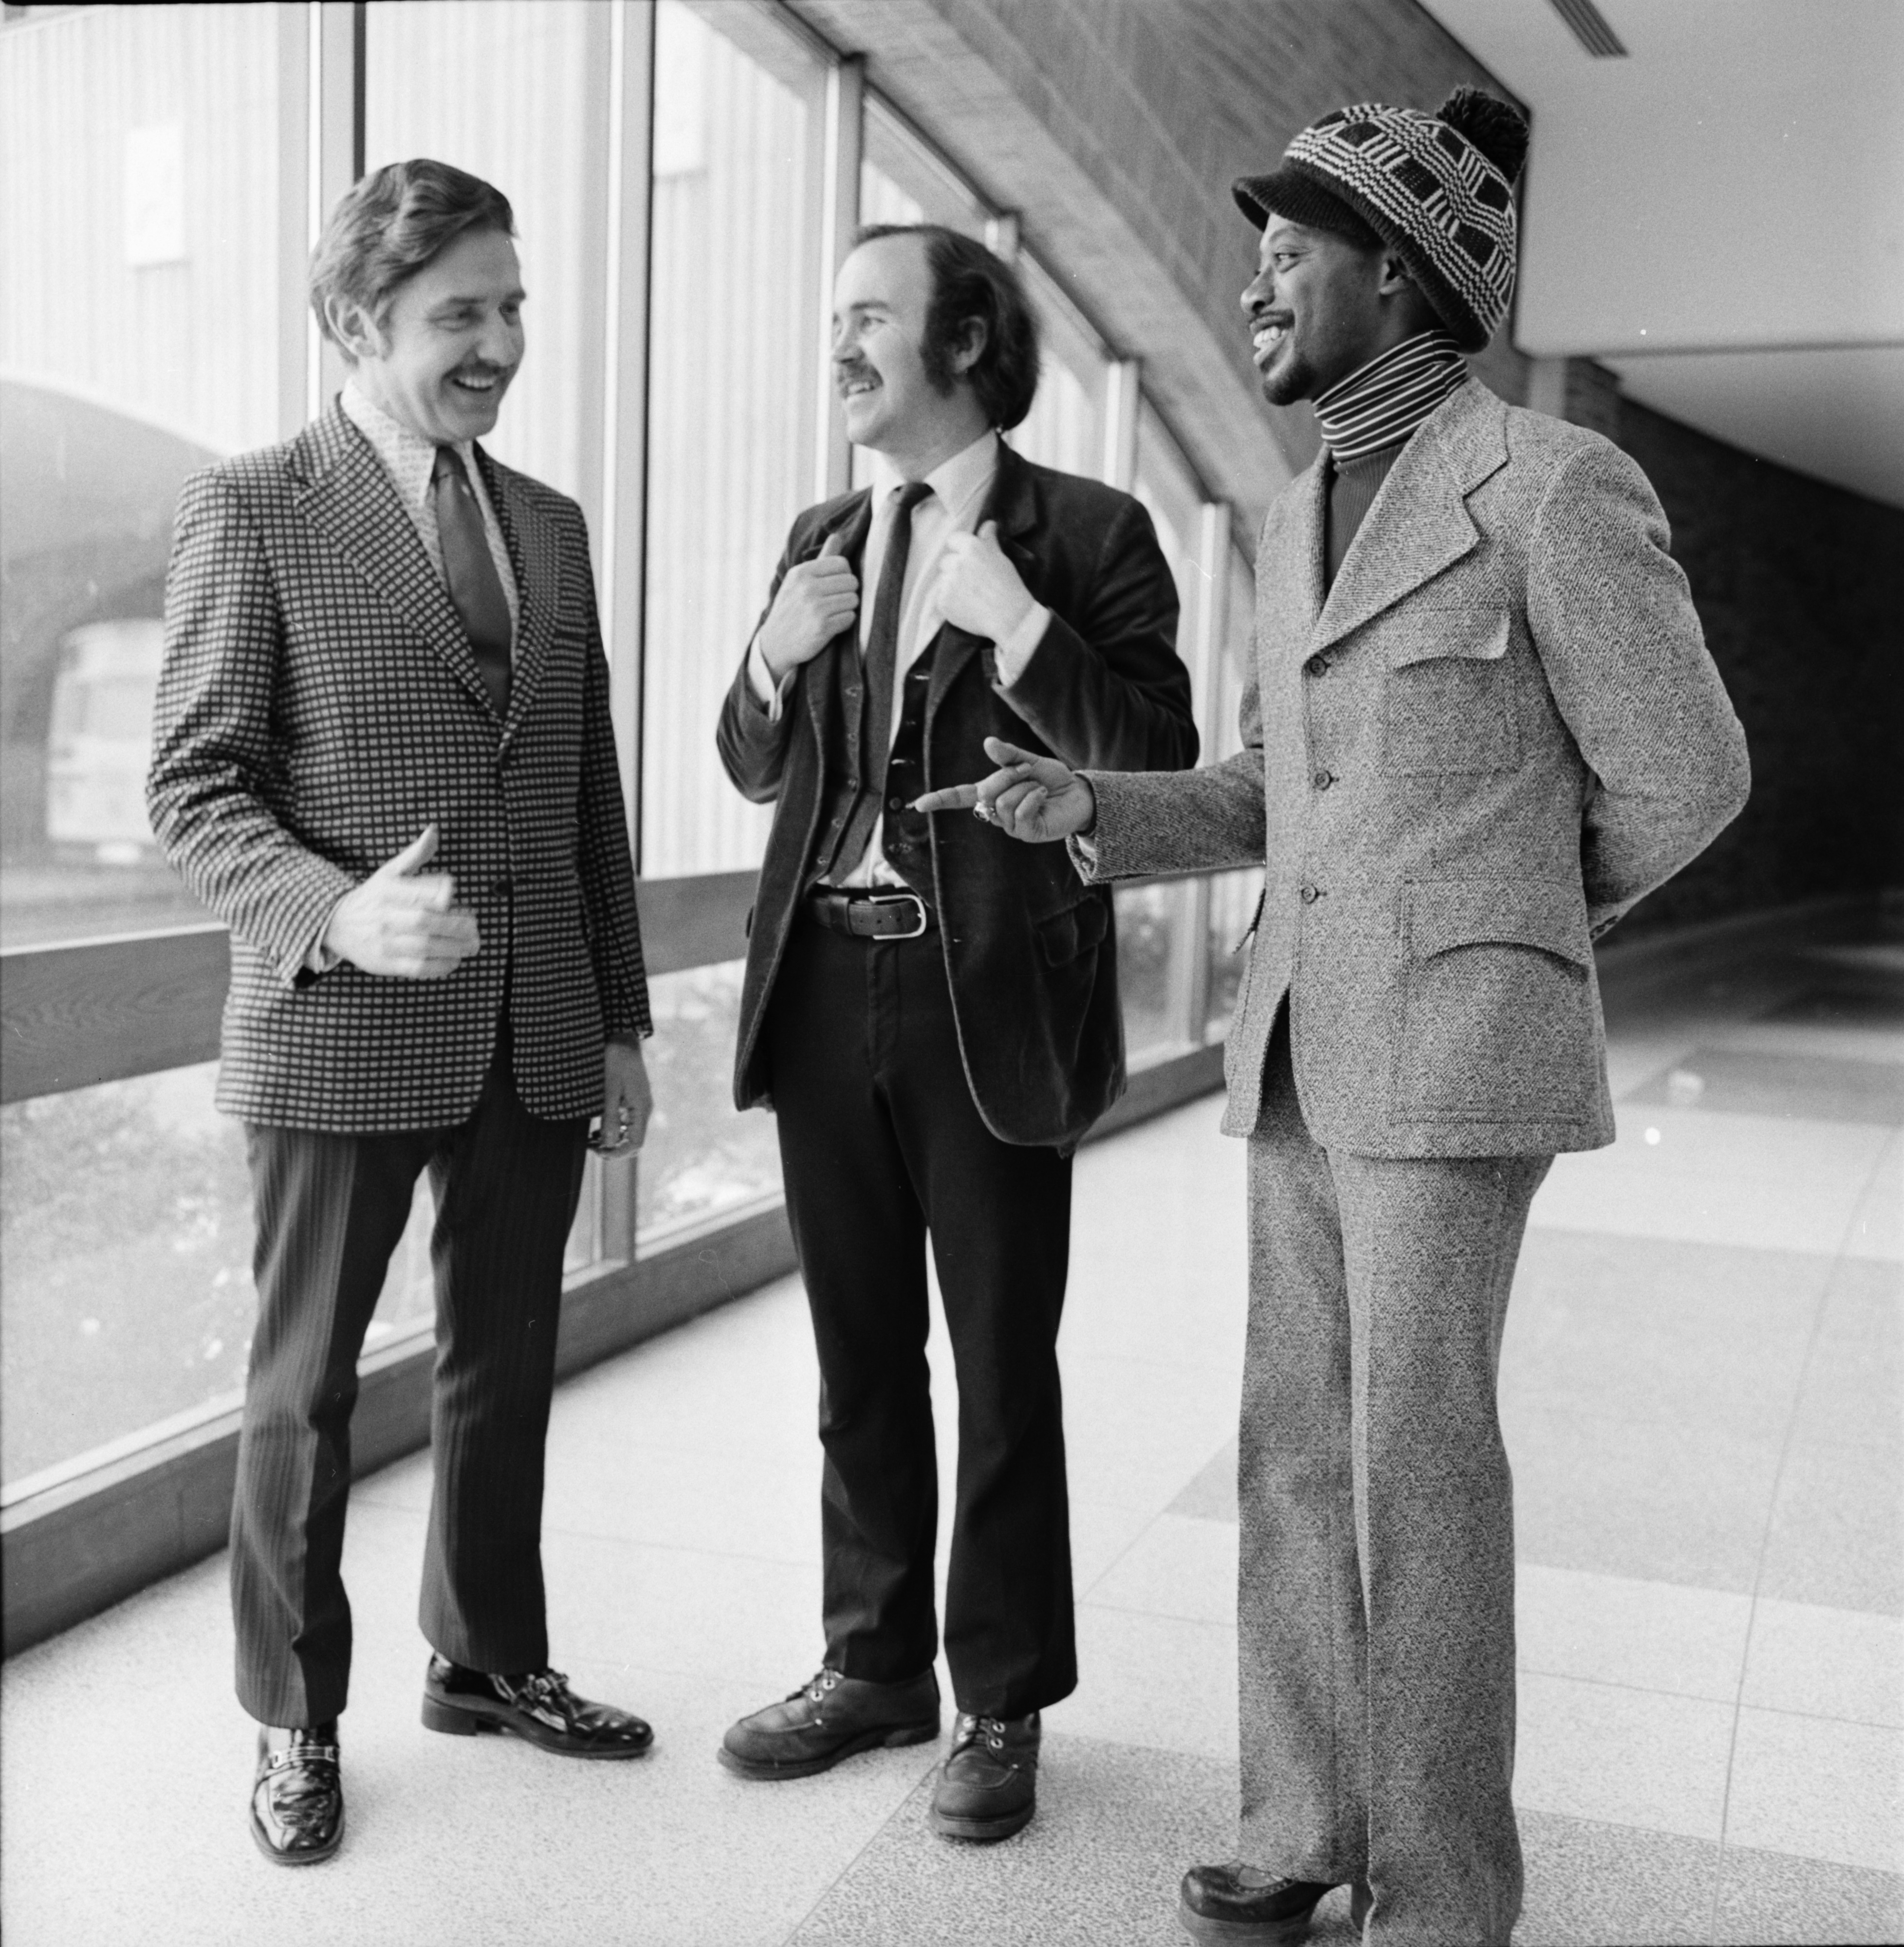 Portrait of South Lyon Major Andrew T. Rajkovich with Desmond P. Ryan and Willie Brown Jr. at Huron High, March 1974 image